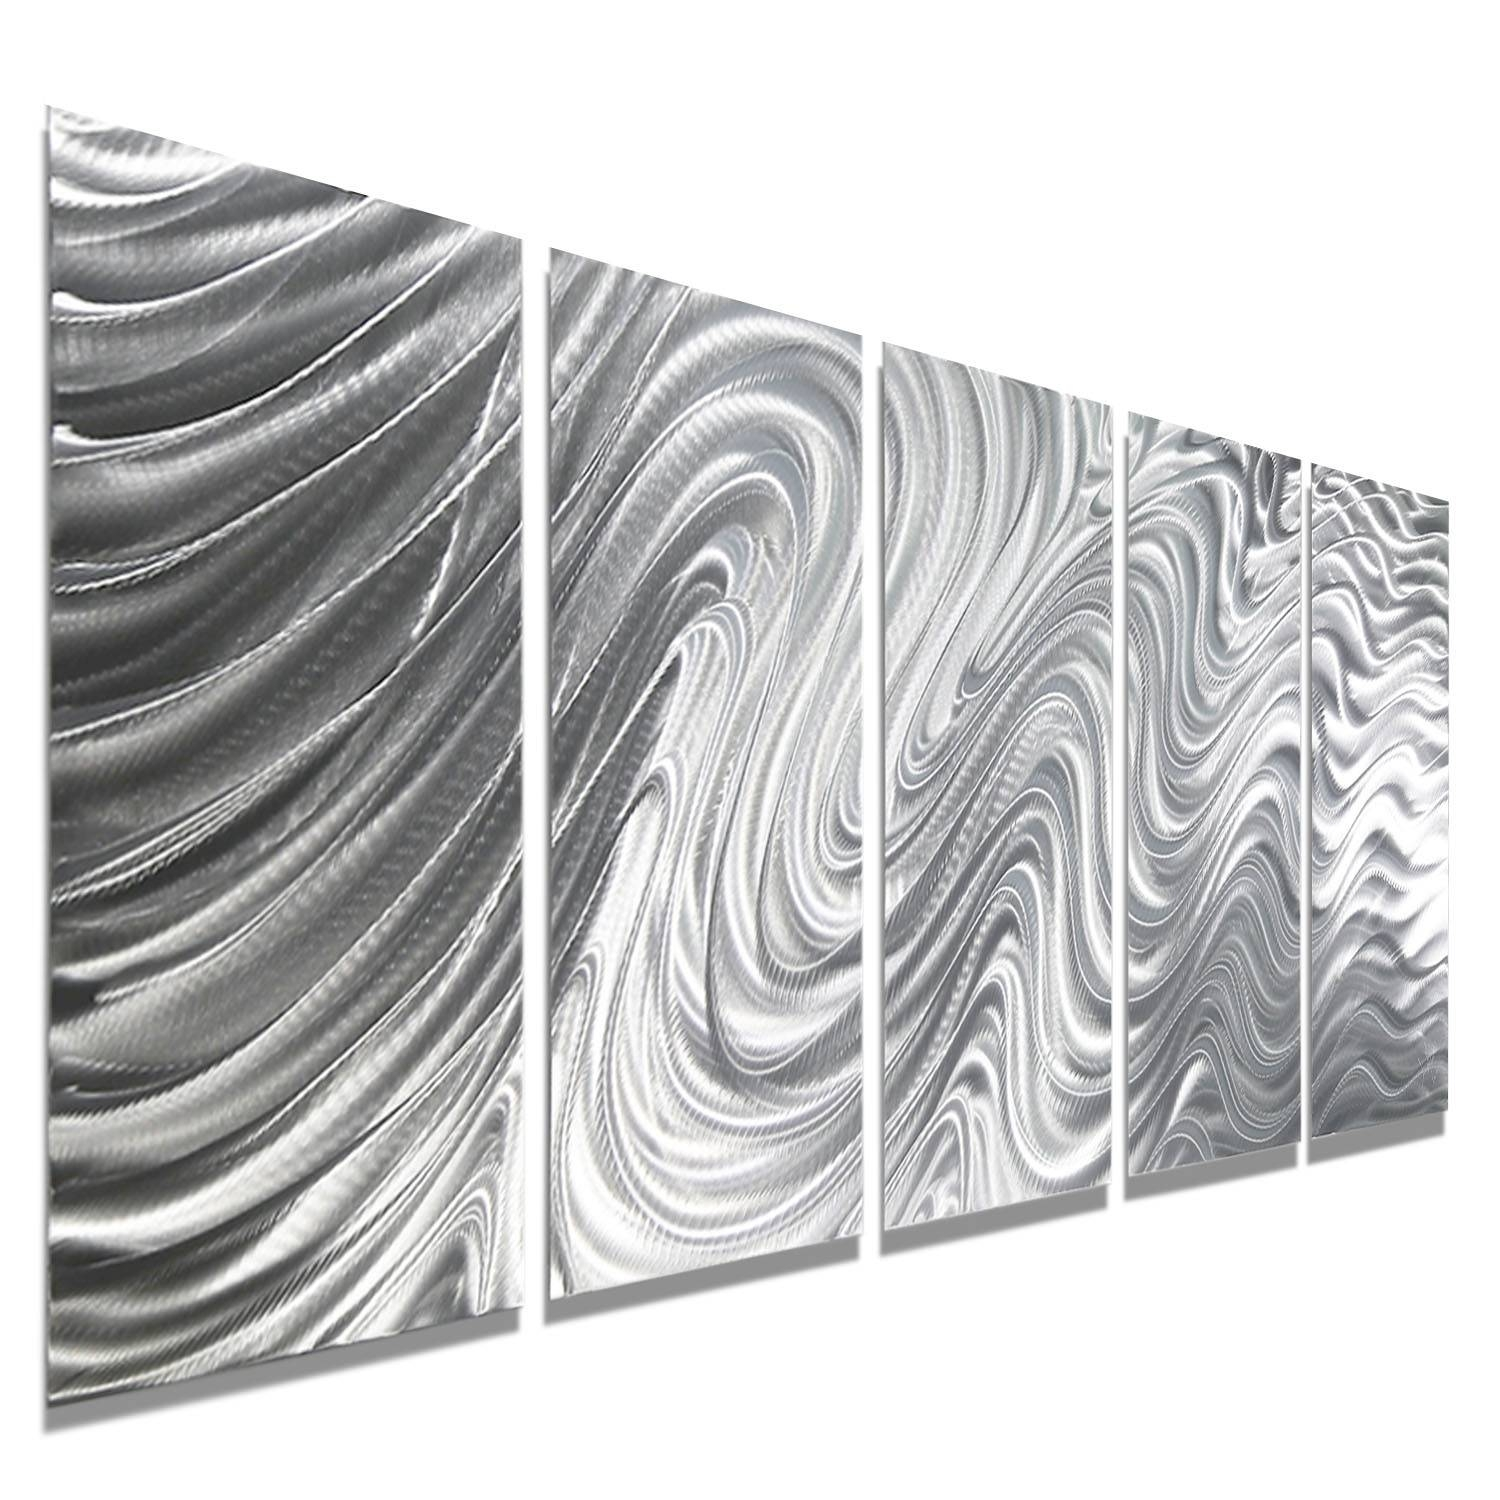 Mirage – Silver Metal Wall Art – 5 Panel Wall Décorjon Allen Inside Most Recently Released Silver Metal Wall Art (View 9 of 20)